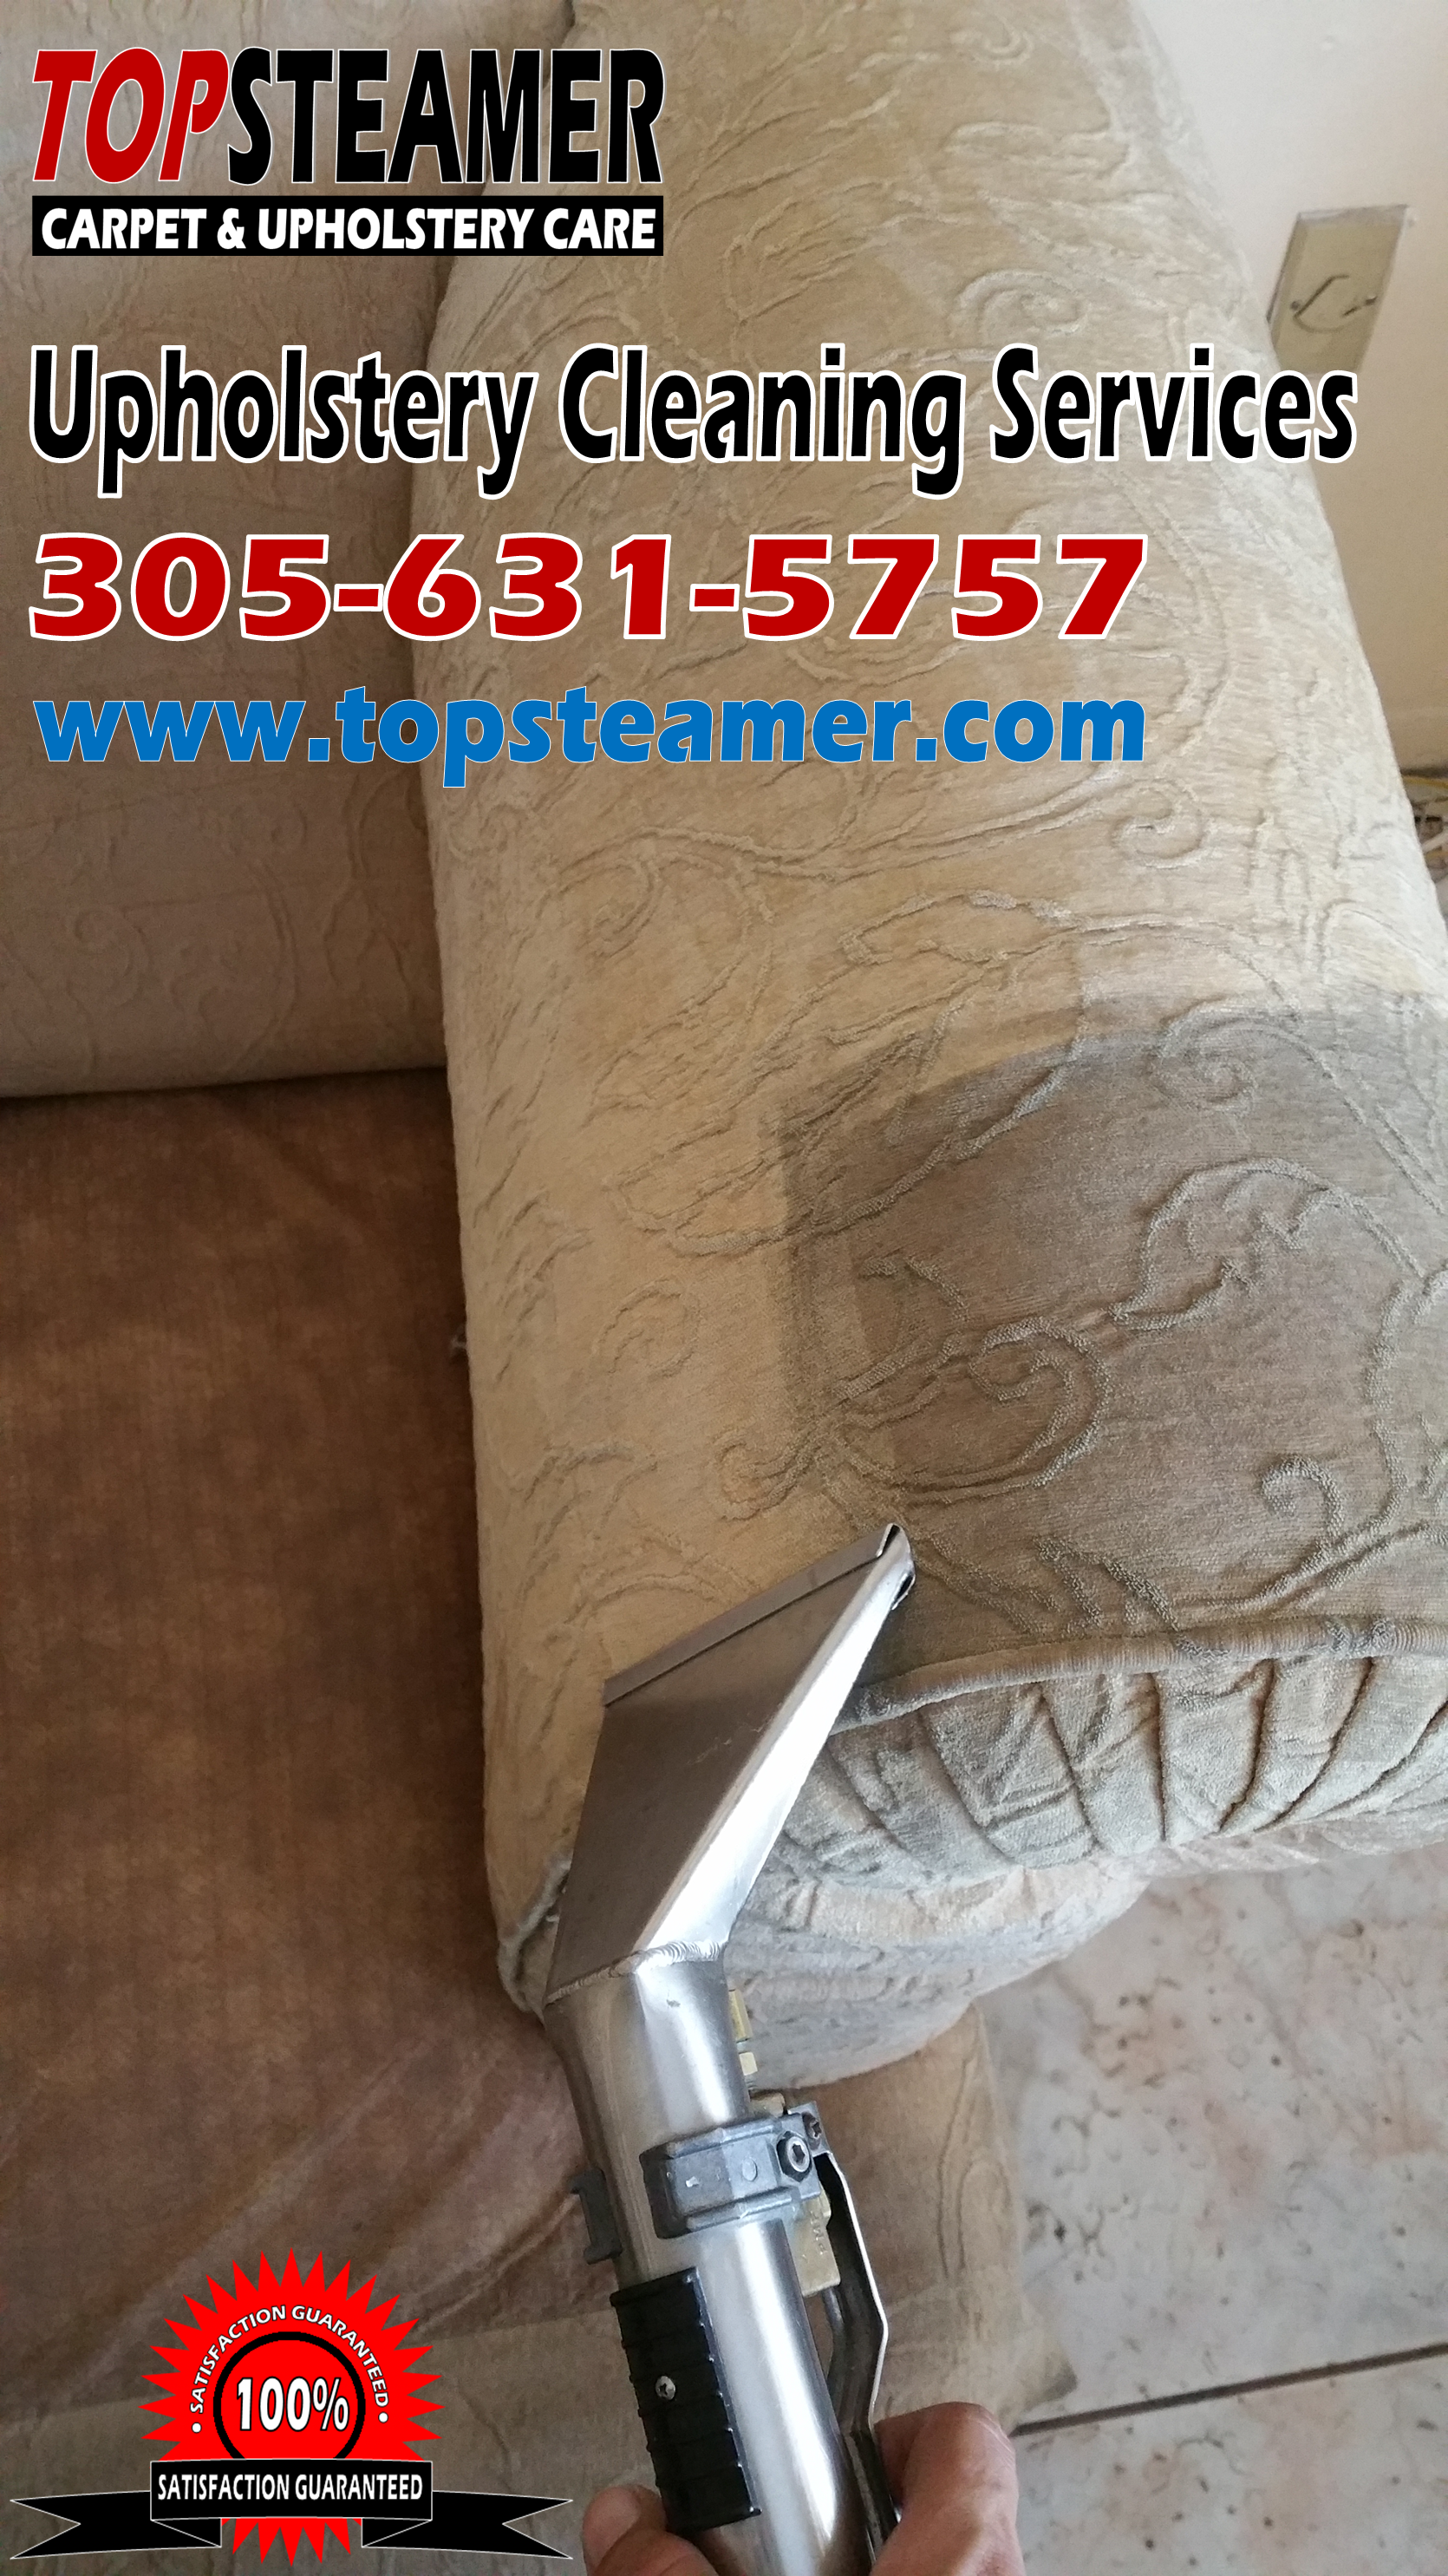 Miami Sofa Cleaner 305 631 5757